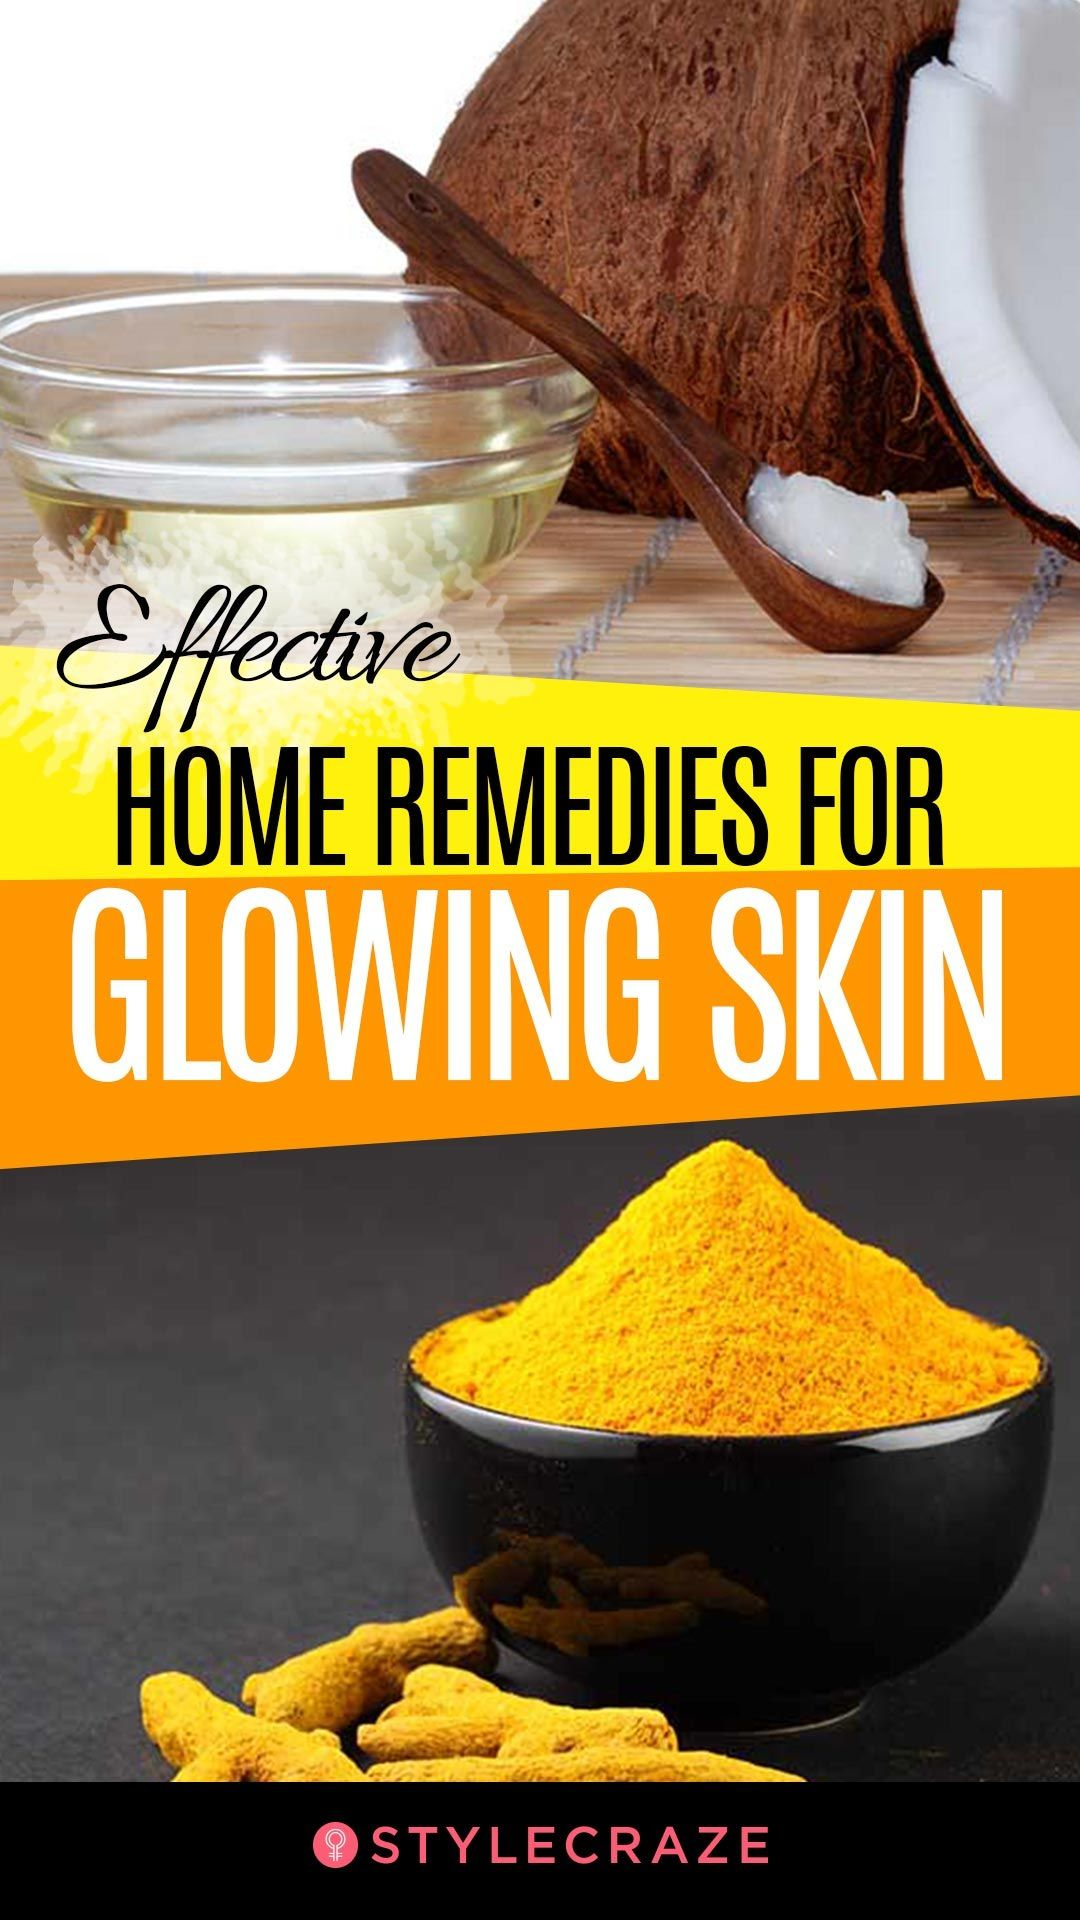 20 Effective Home Remedies For Glowing Skin That Really Work #beauty #tips  #glowingskin #skin